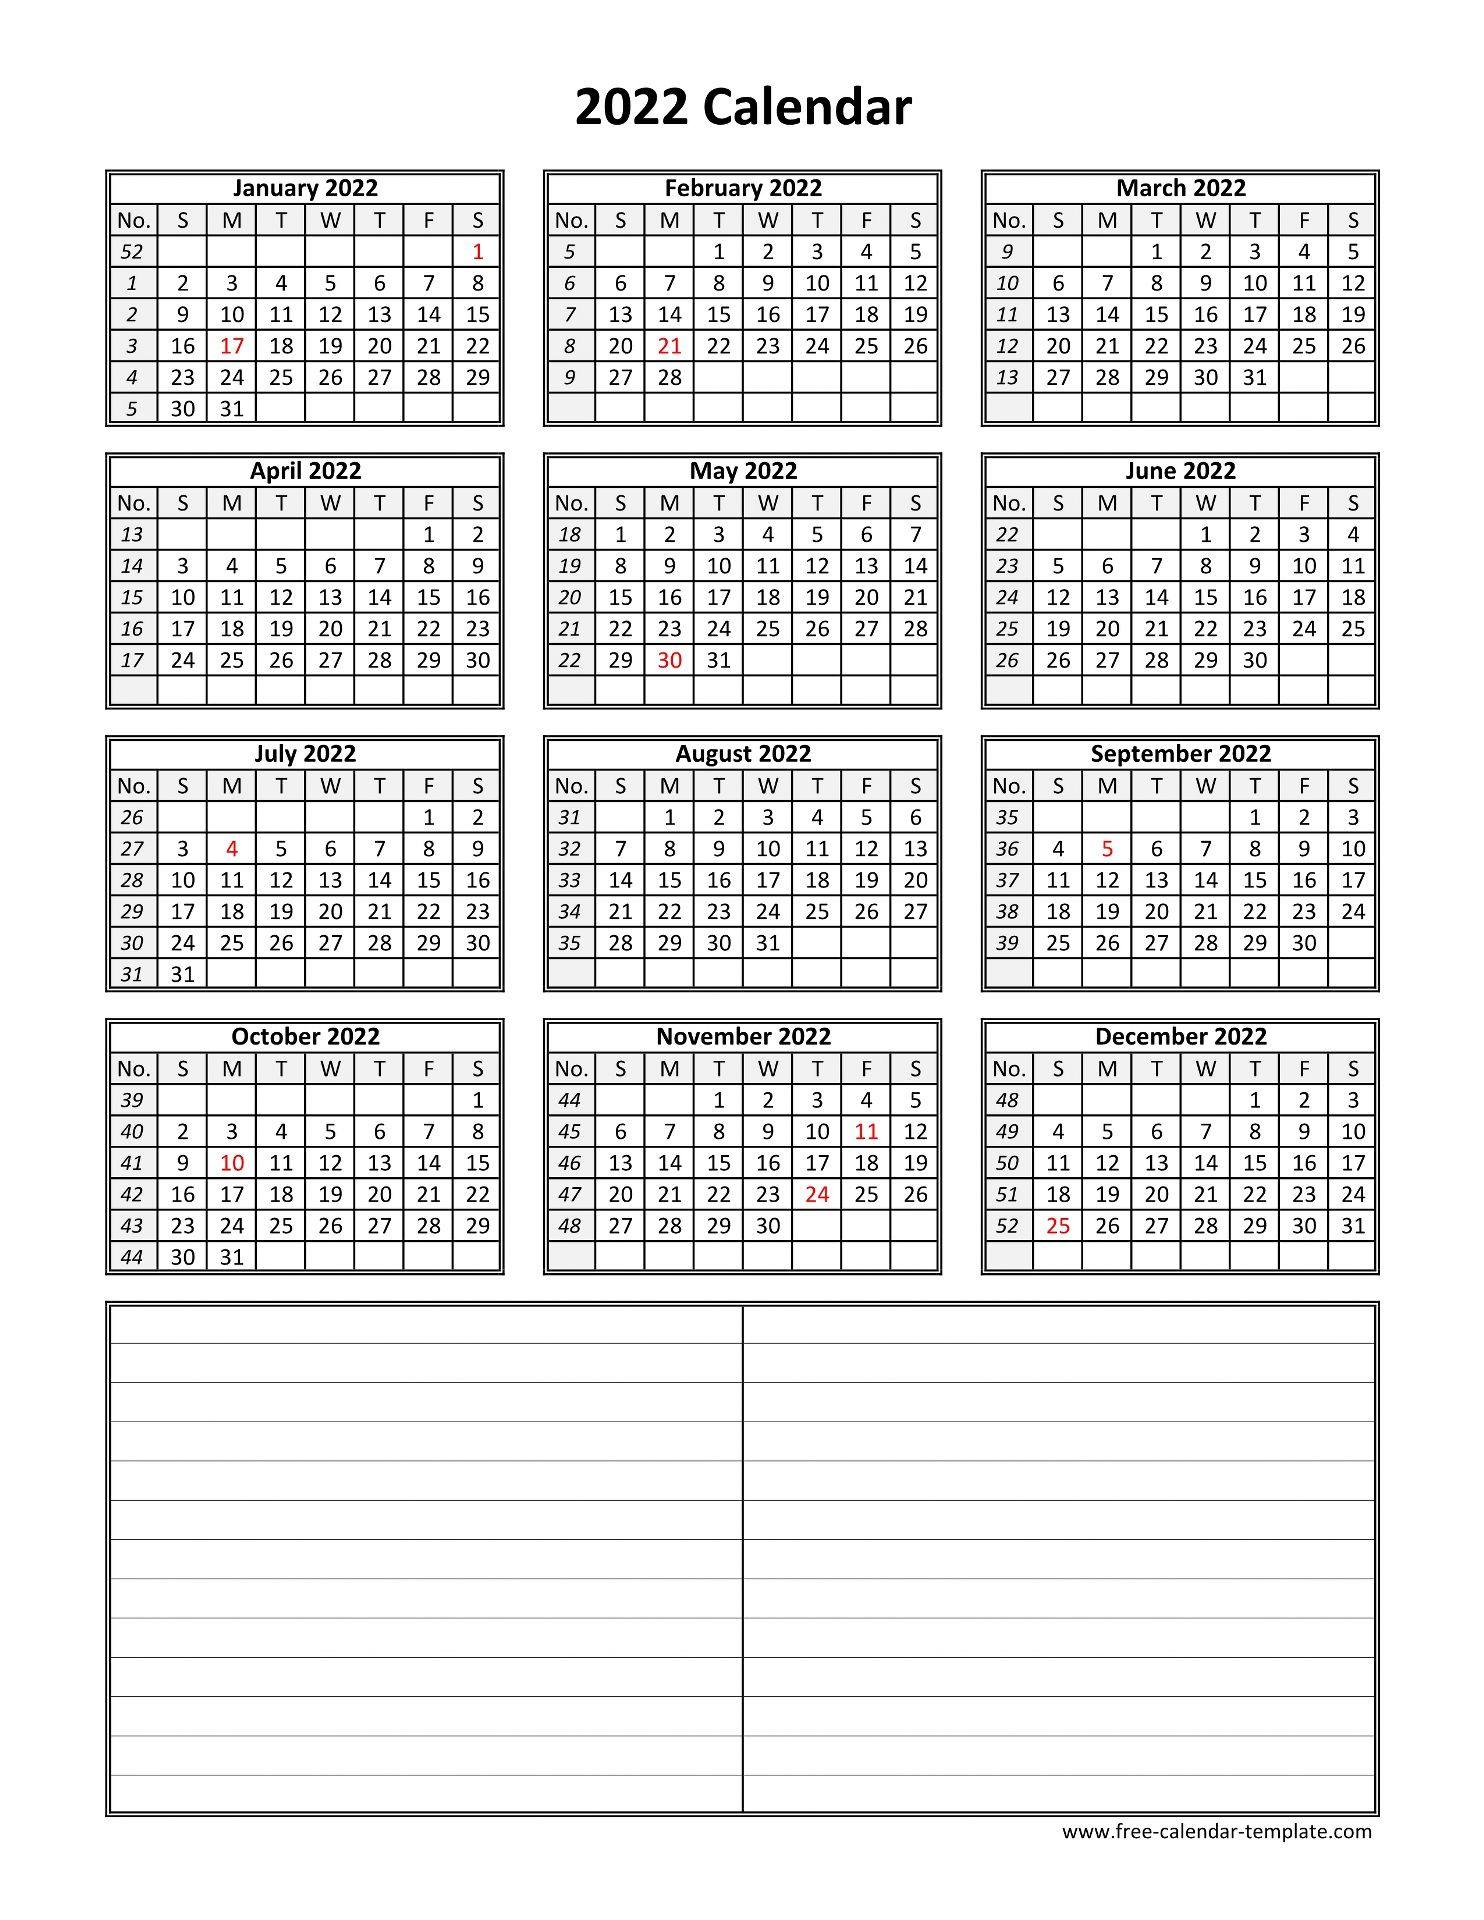 Vertical Calendar 2022.Yearly 2022 Printable Calendar With Space For Notes Free Calendar Template Com